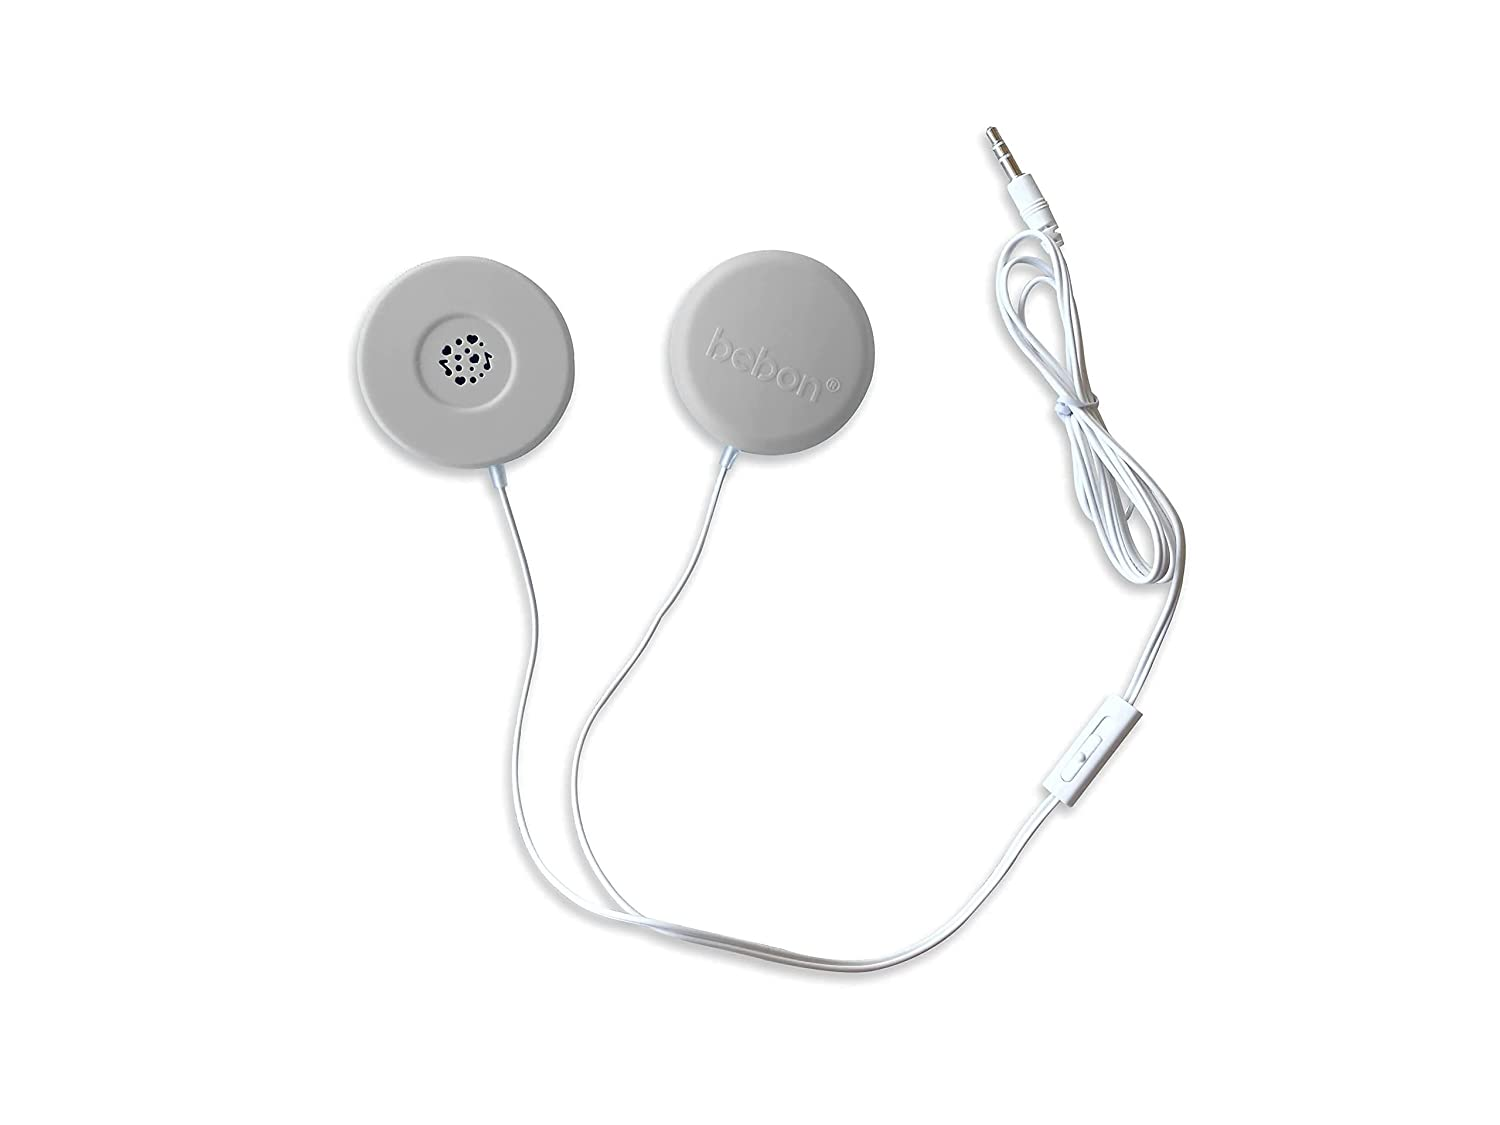 Baby Bump Headphones Marvelous Edition, Plays and Shares Music, Sound and Voices to The Womb, Prenatal Speaker, Including bebon Tunes APP (Stone)